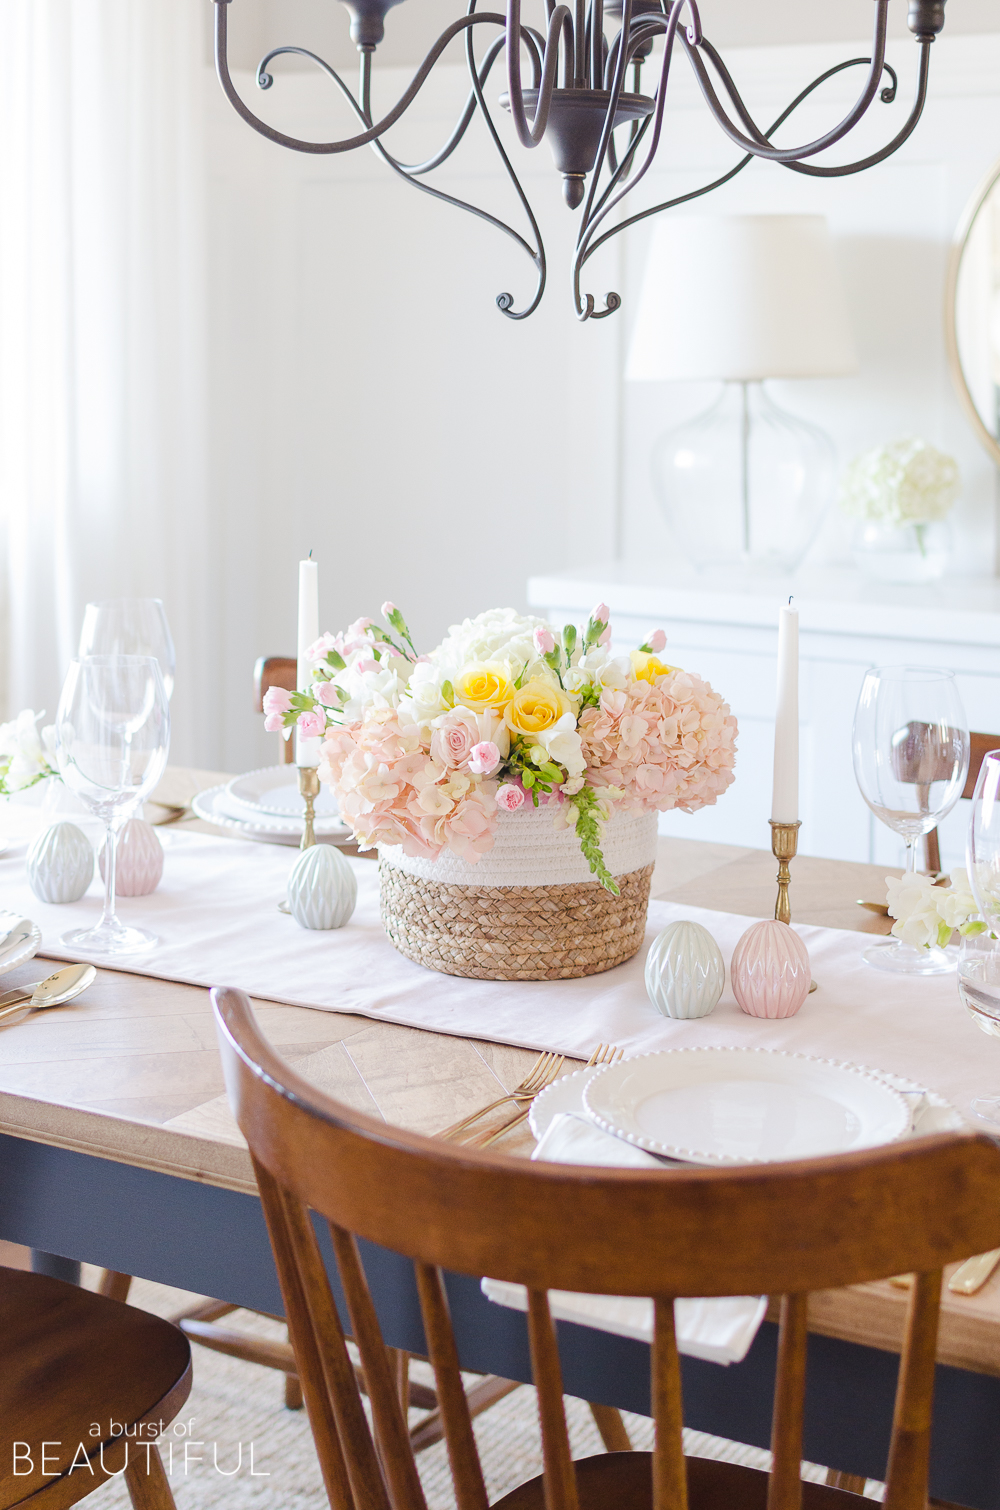 Colorful Easter Tablescape and Centerpiece Ideas - A Burst of Beautiful